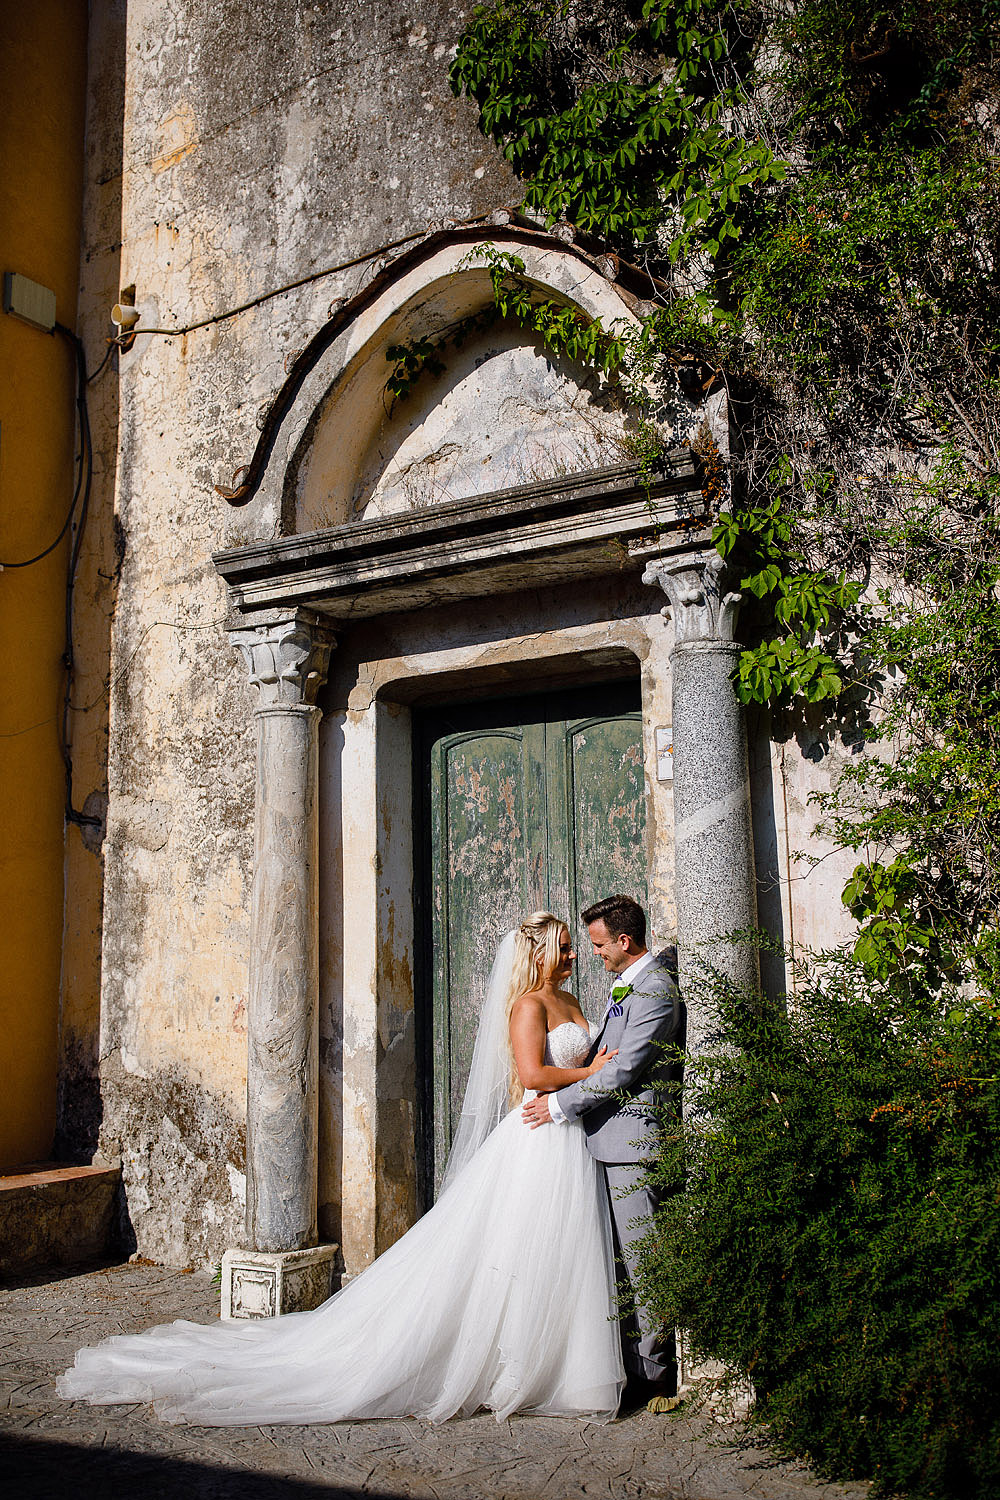 AMALFI COAST A MAGICAL LAND | WEDDING IN RAVELLO :: Luxury wedding photography - 43